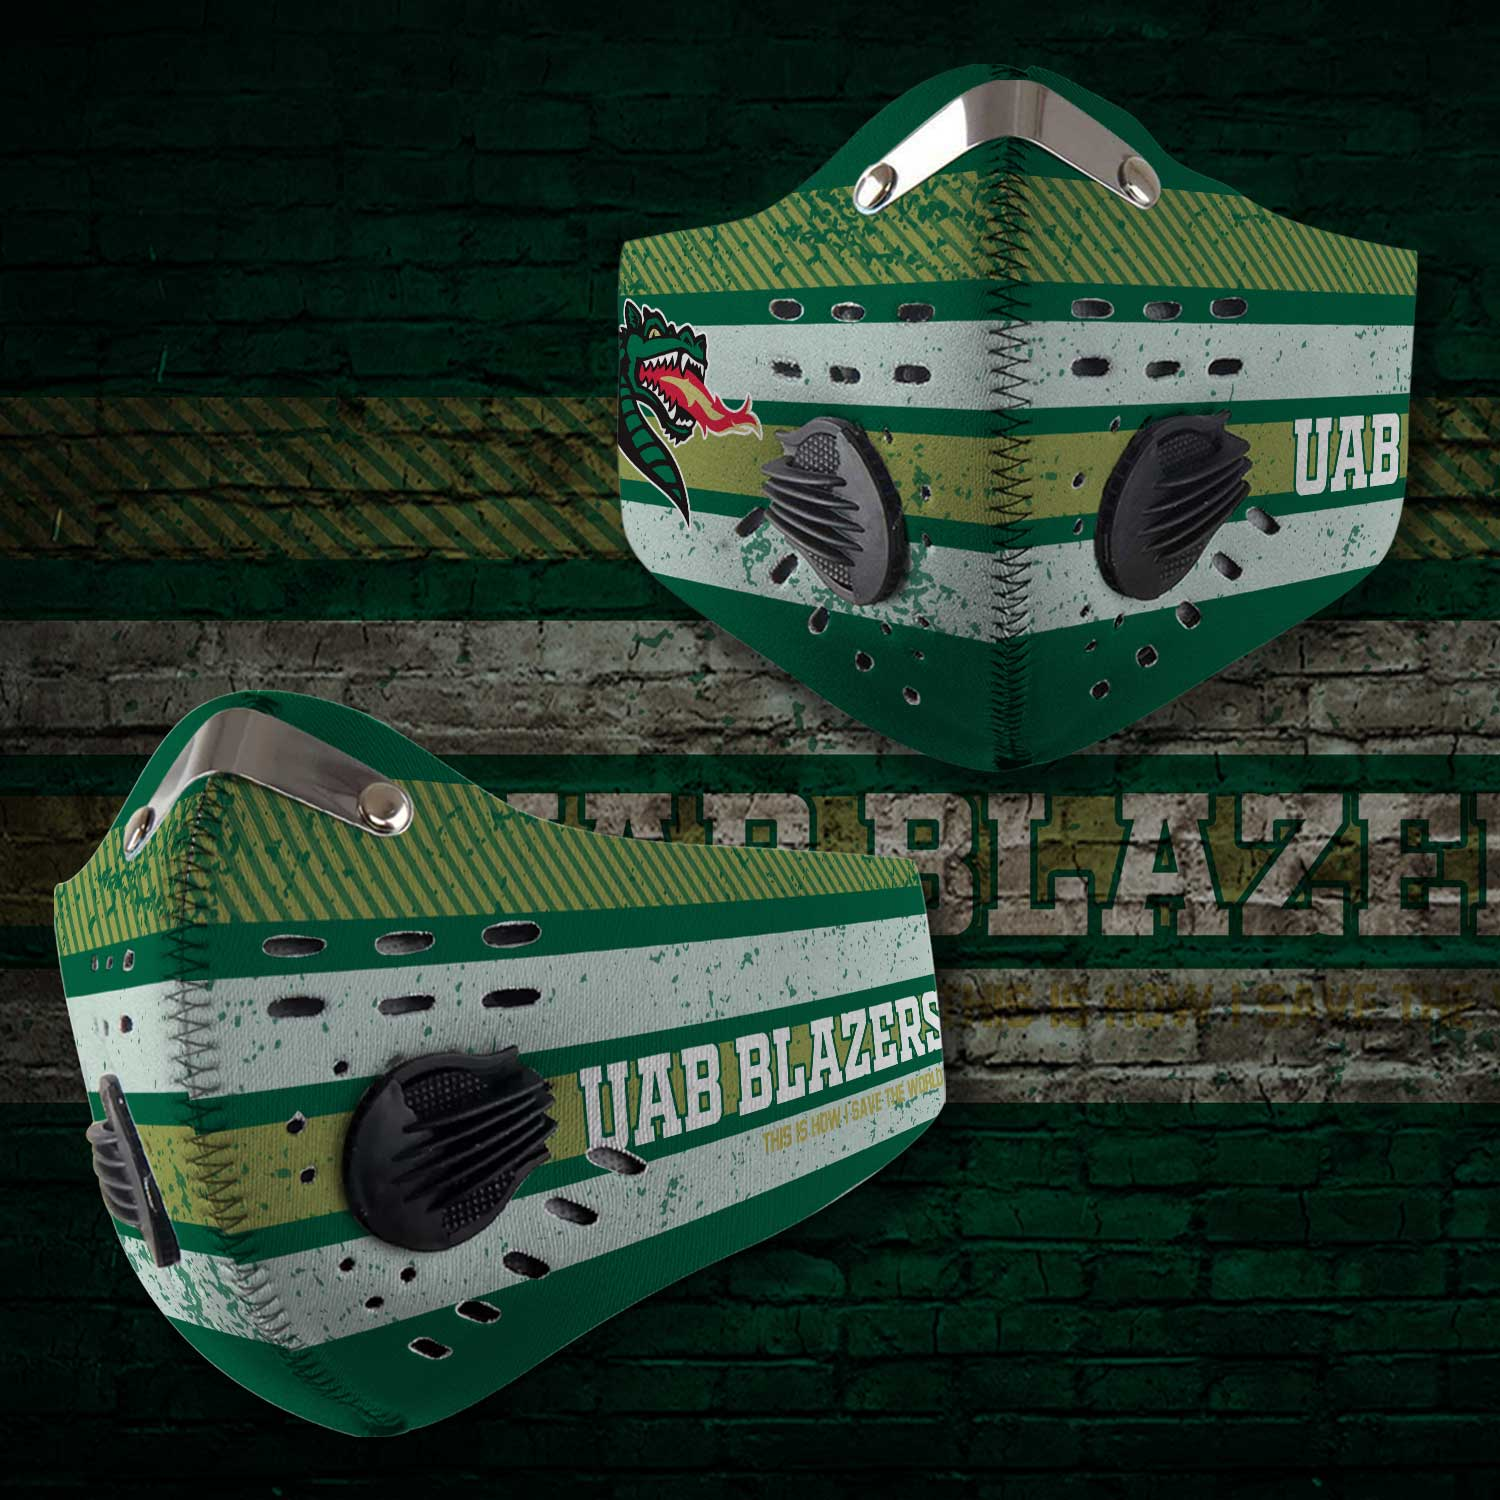 Uab blazers this is how i save the world carbon filter face mask 2